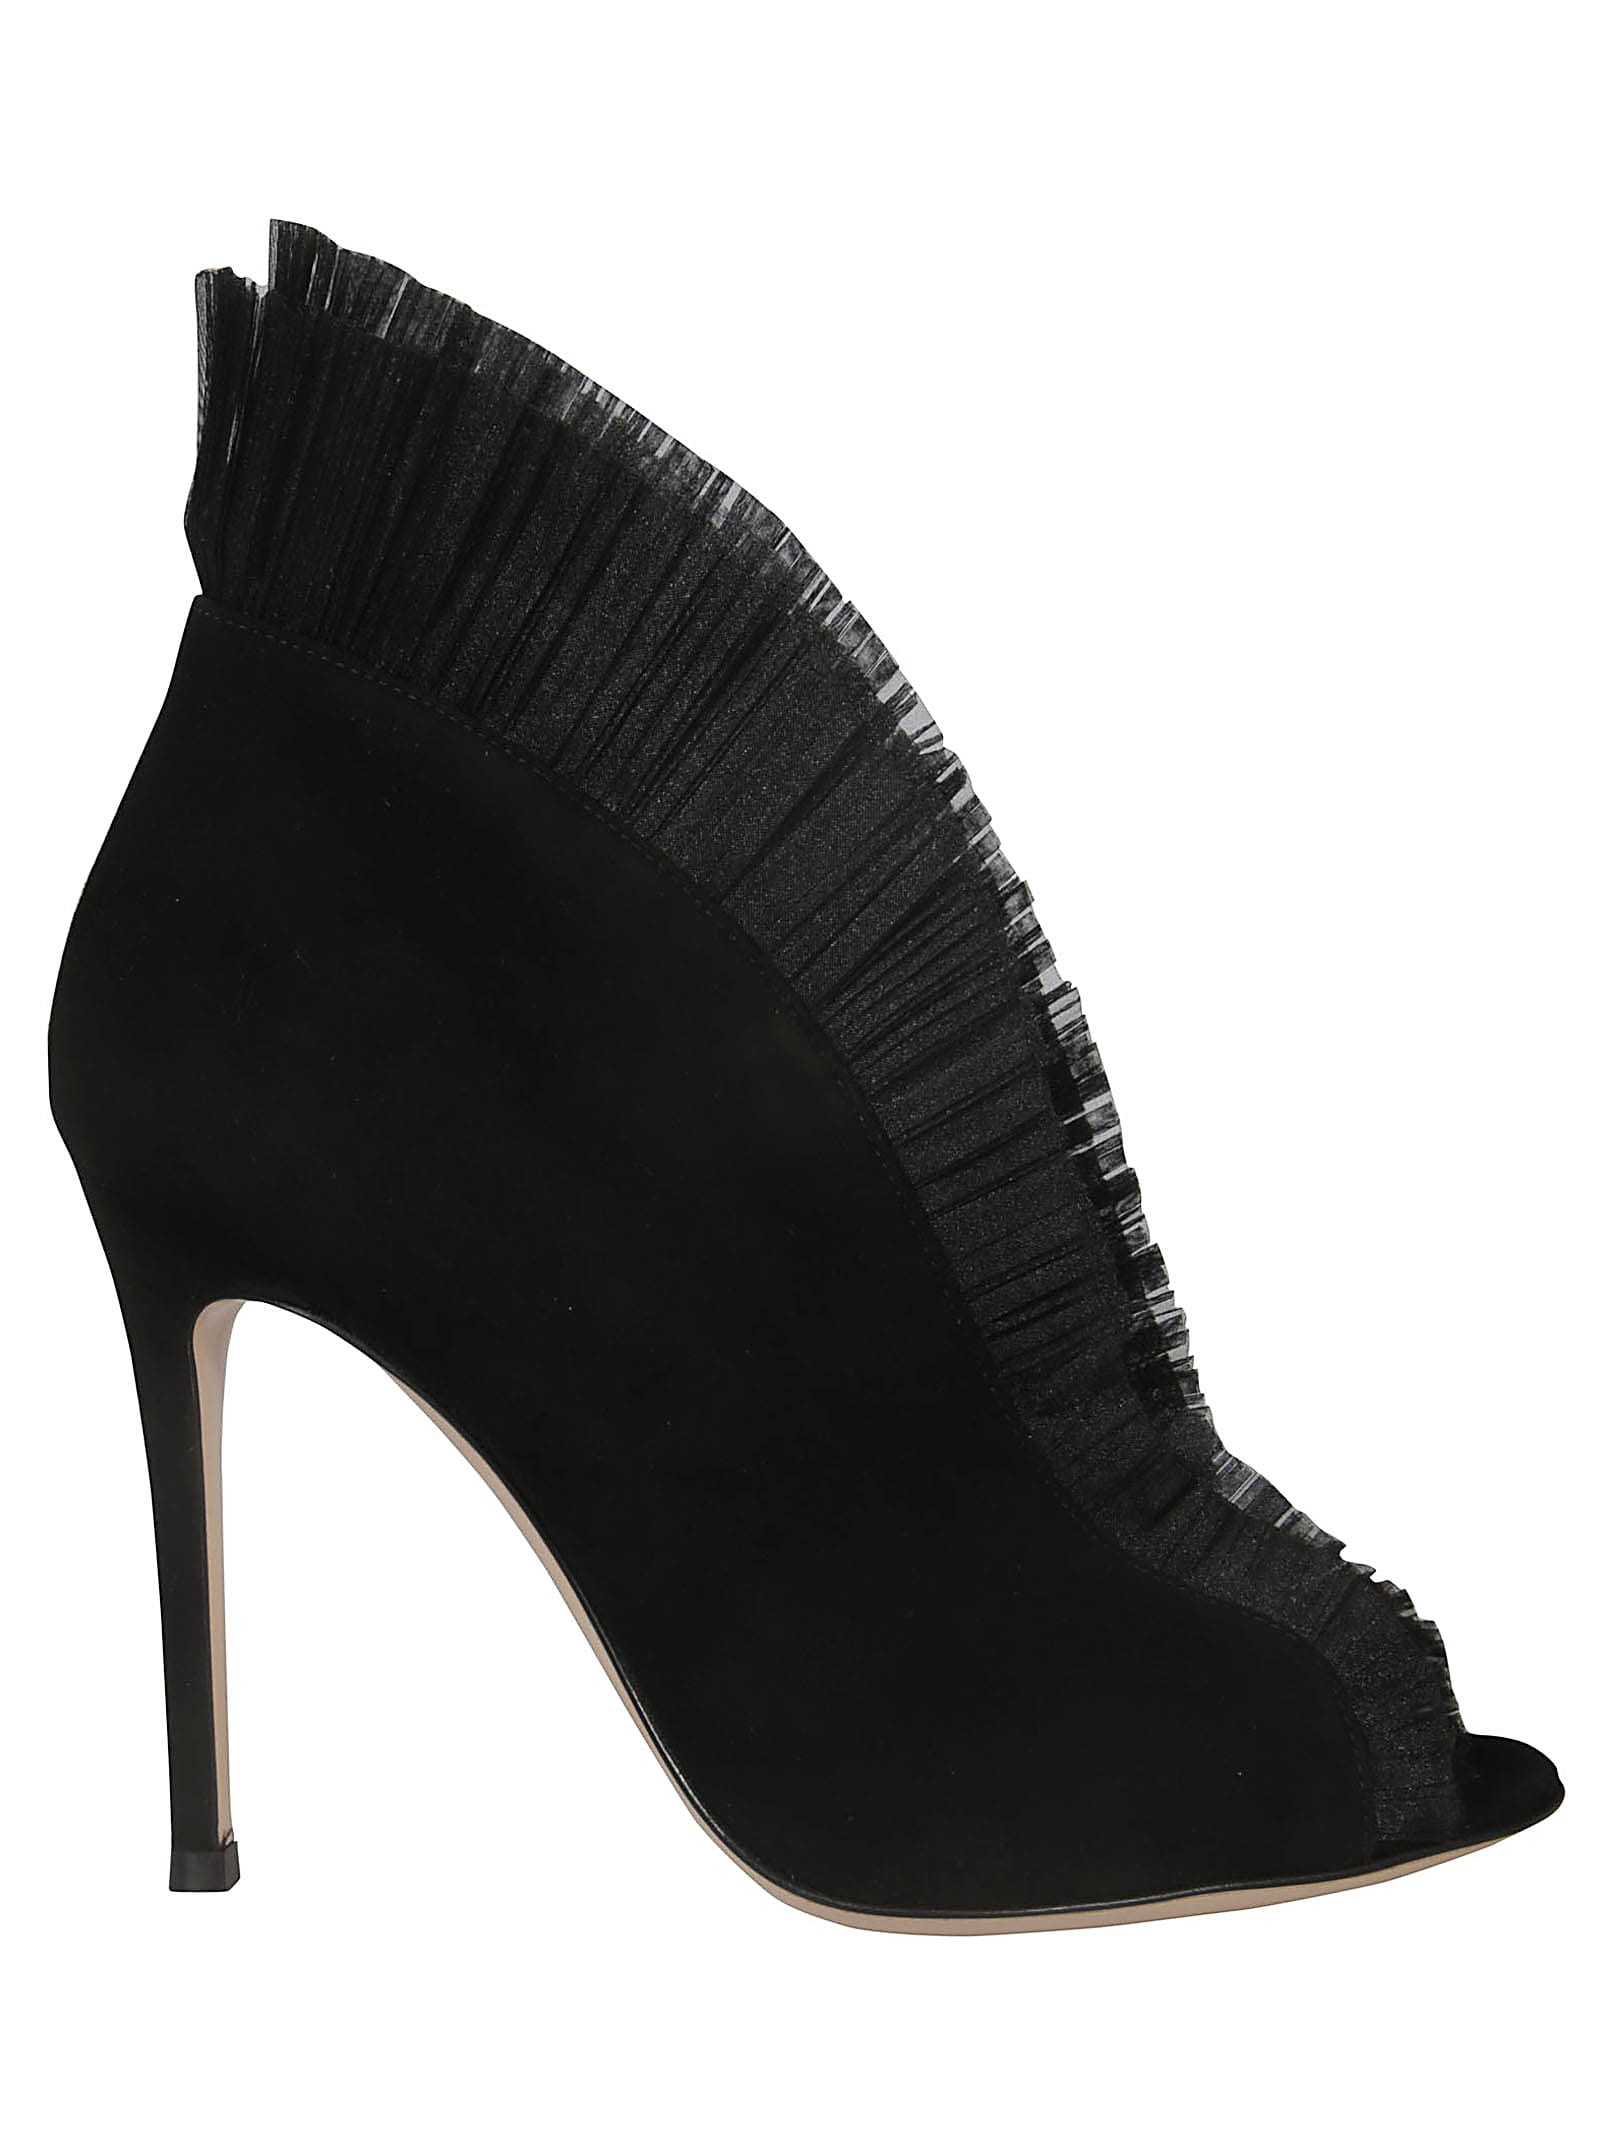 Gianvito Rossi Vamp Ankle Boots